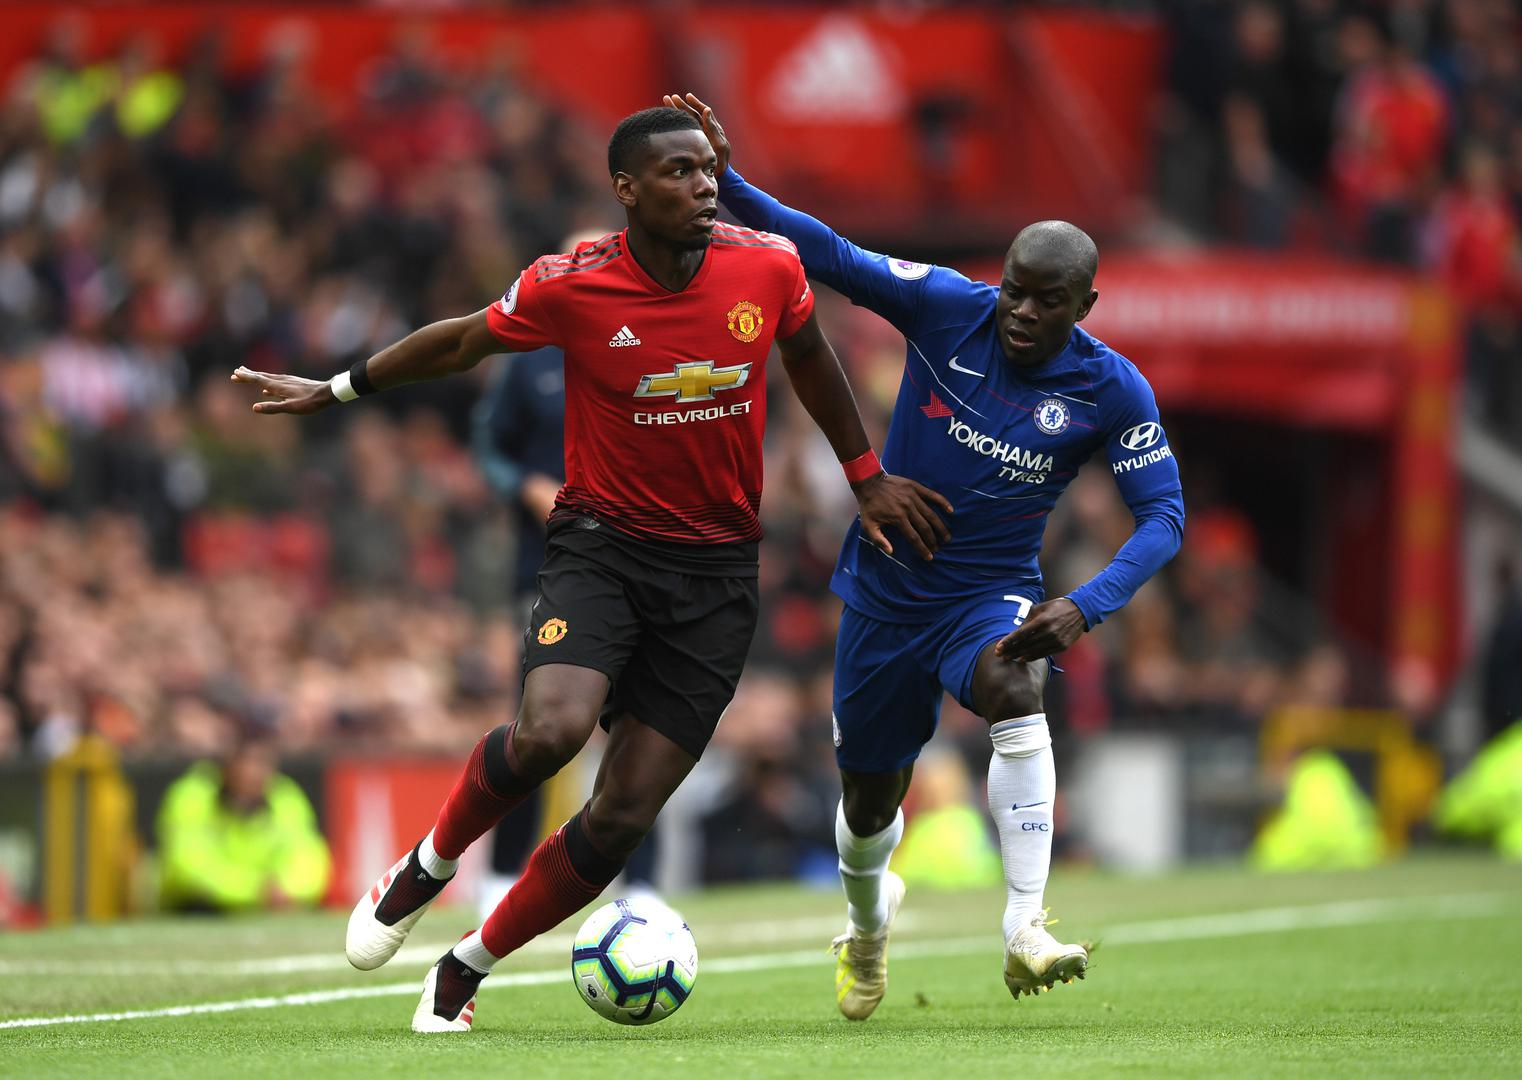 N'Golo Kante closes down Paul Pogba during Manchester United's Premier League game against Chelsea at Old Trafford in 2019/20.